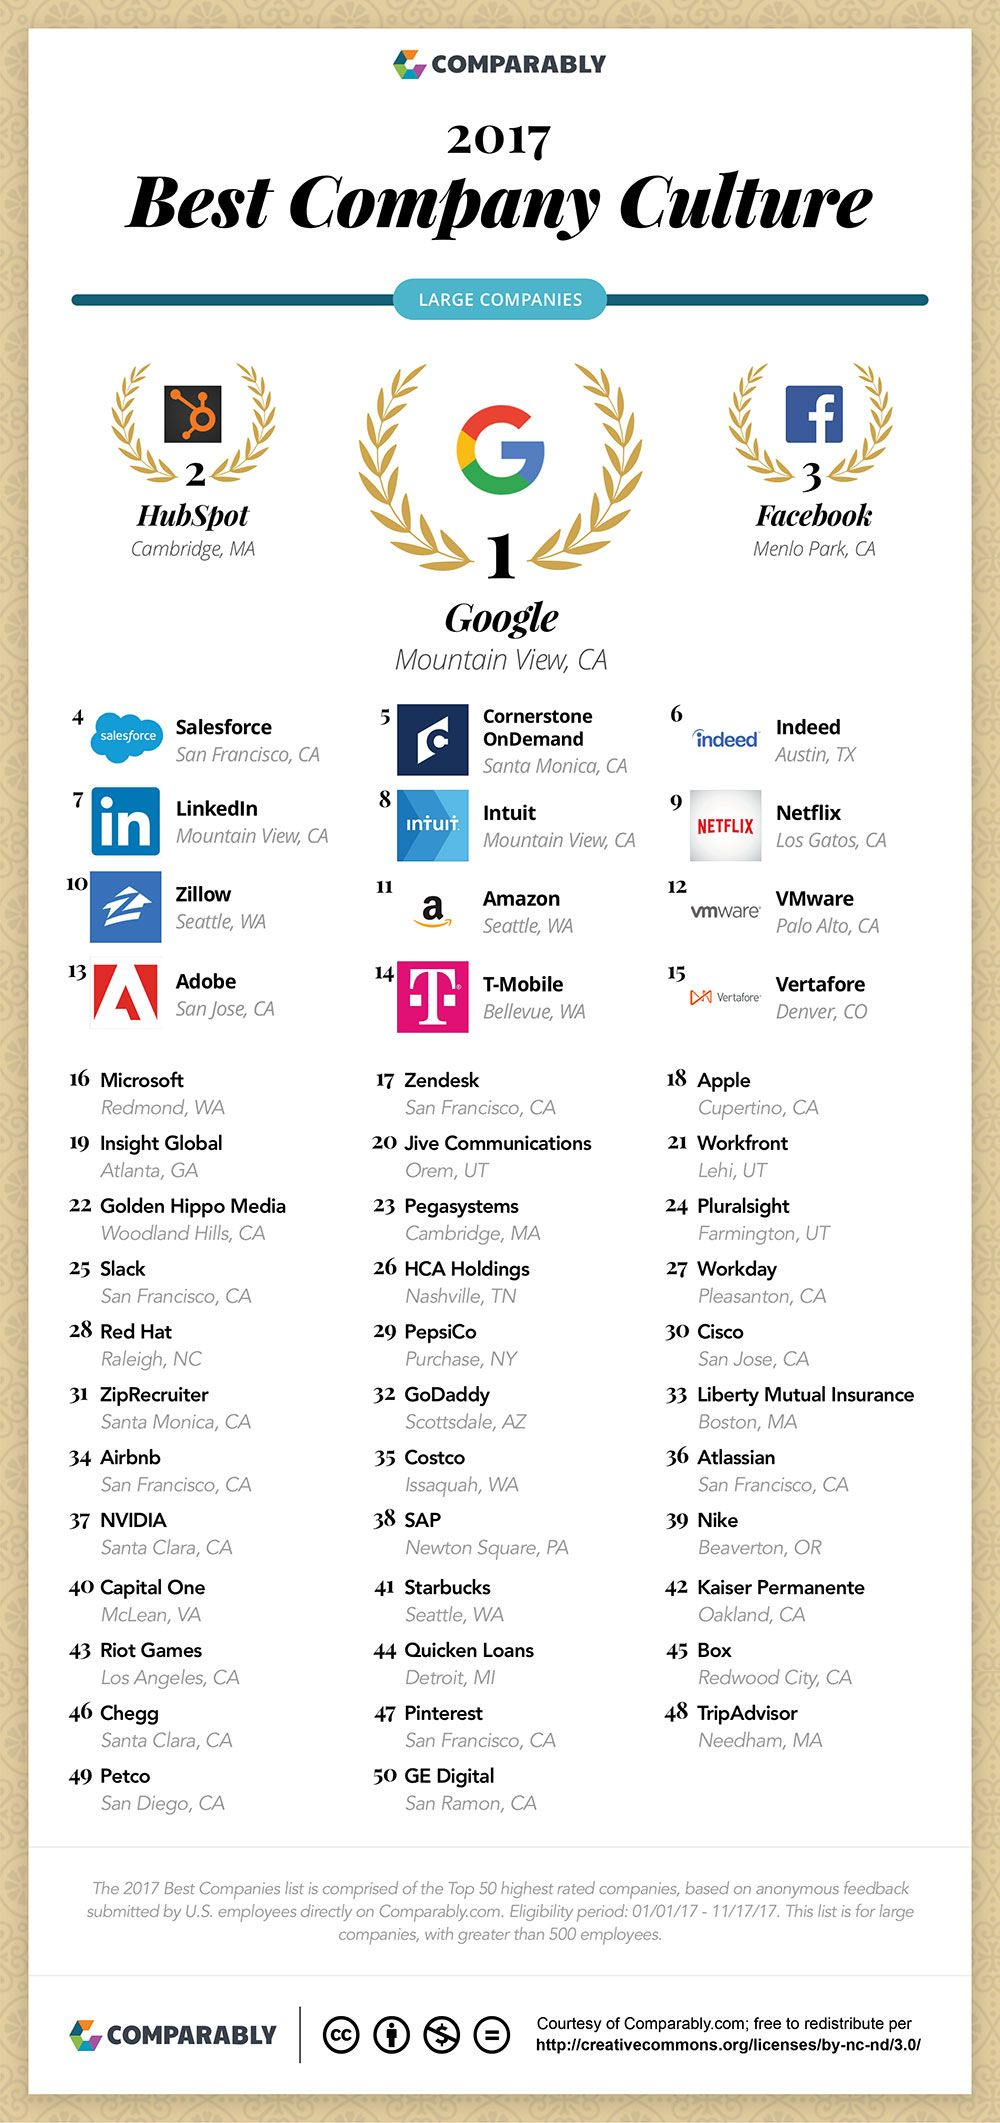 Best Company Culture Who Made The List In 2017 Infographic Company Culture Good Company Business Infographic